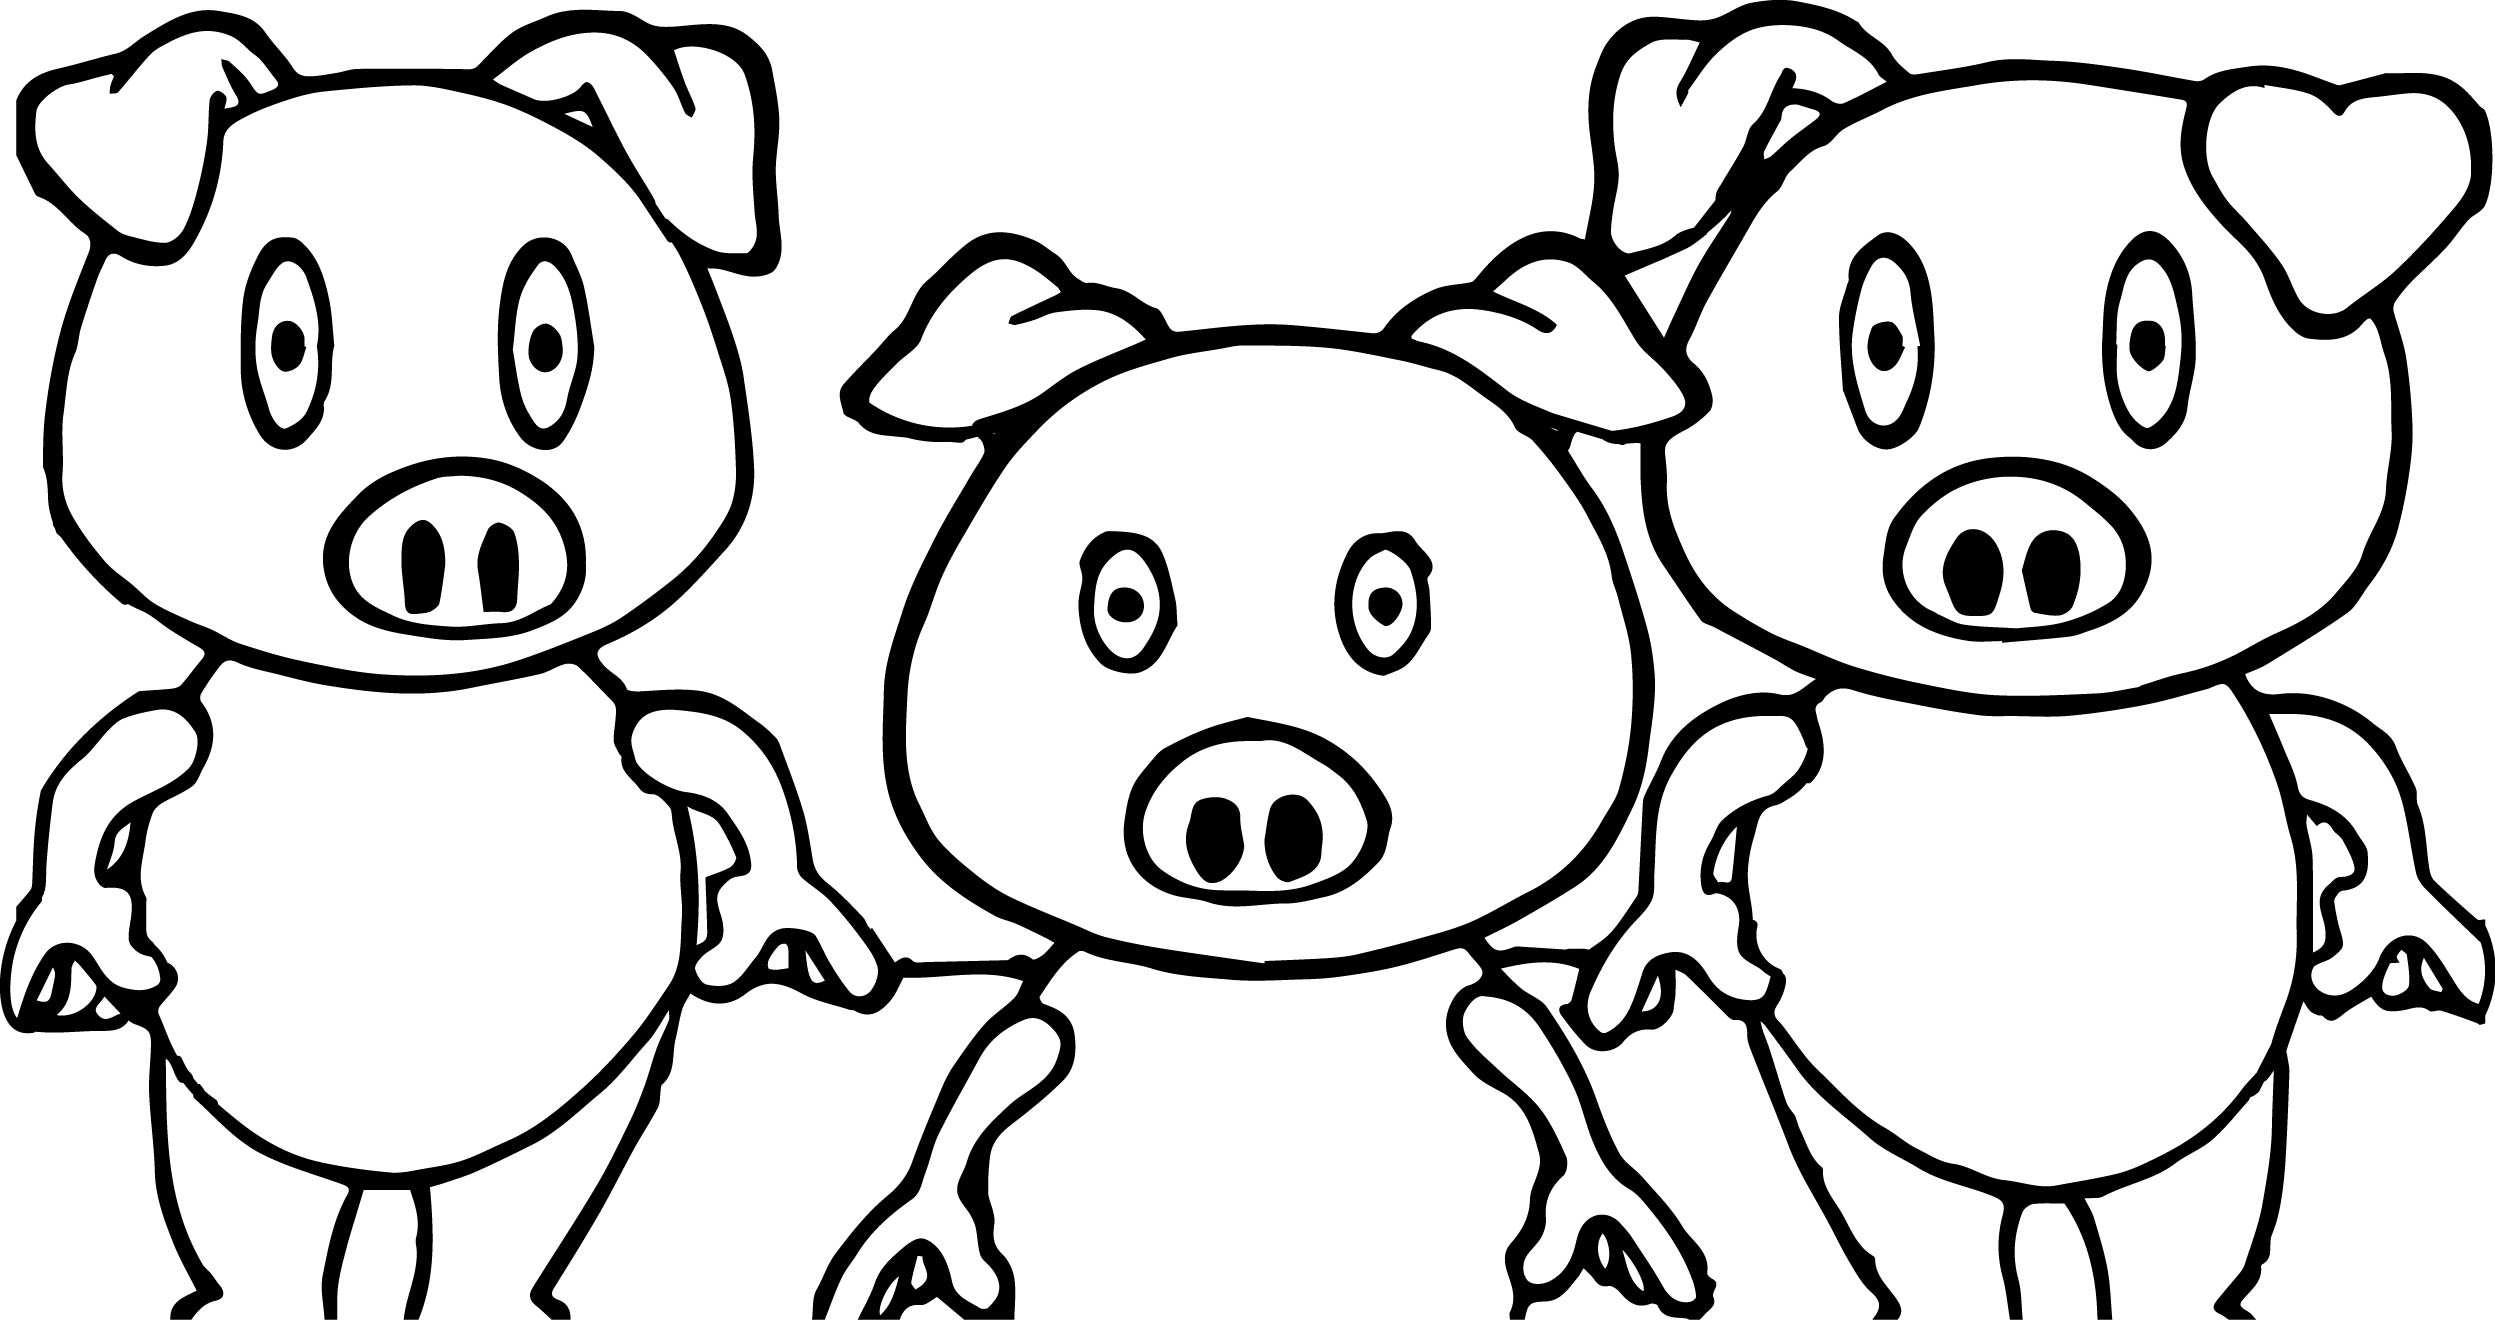 Coloring pages 3 little pigs - 3 Little Pigs Shock Coloring Page